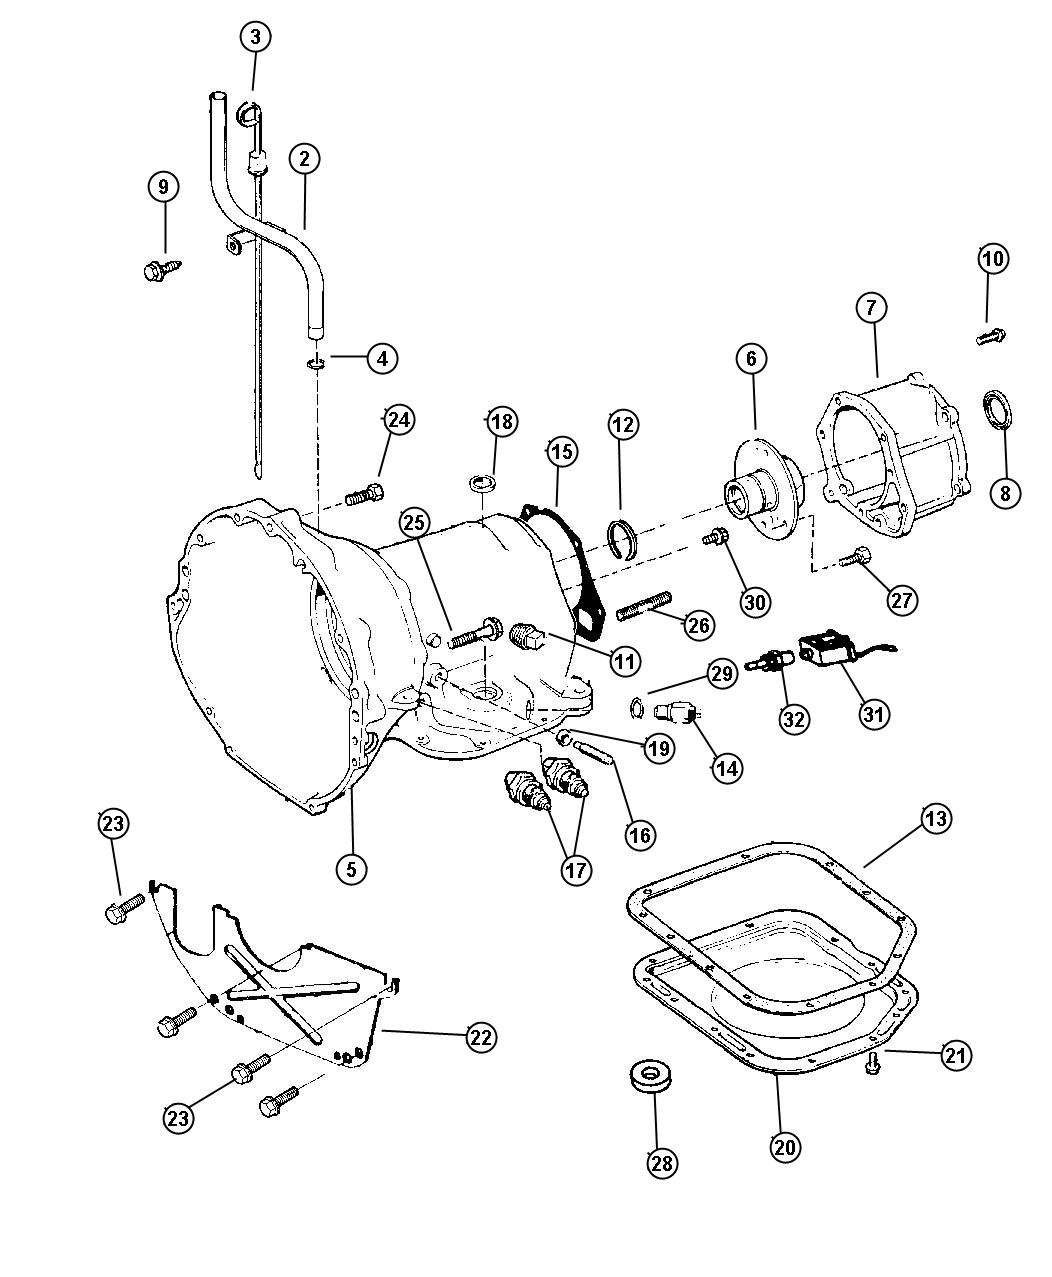 Jeep Wrangler Connector Wiring Engine Related